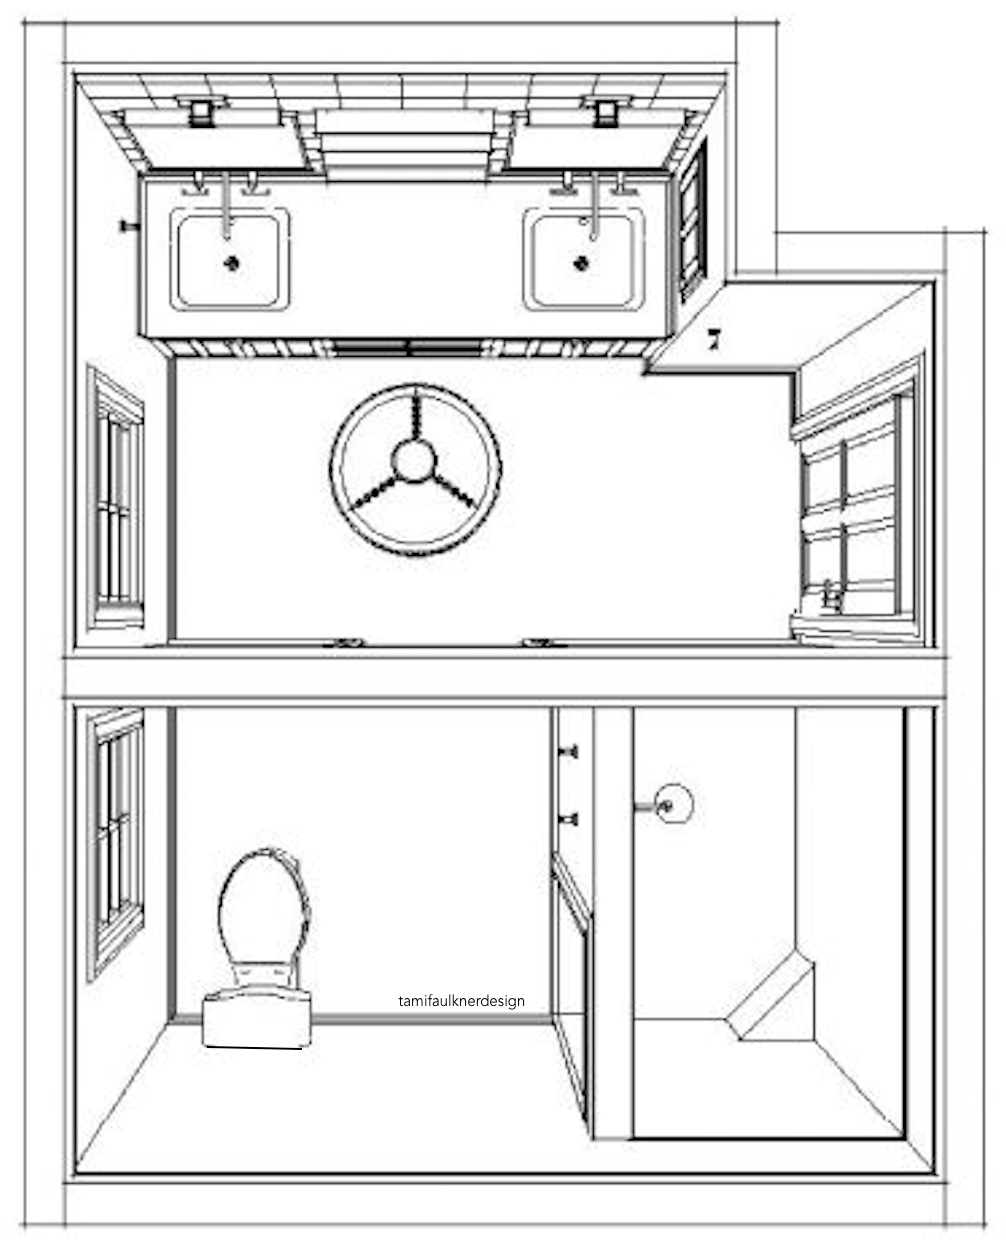 PERSPECTIVE PLAN - OPTION A